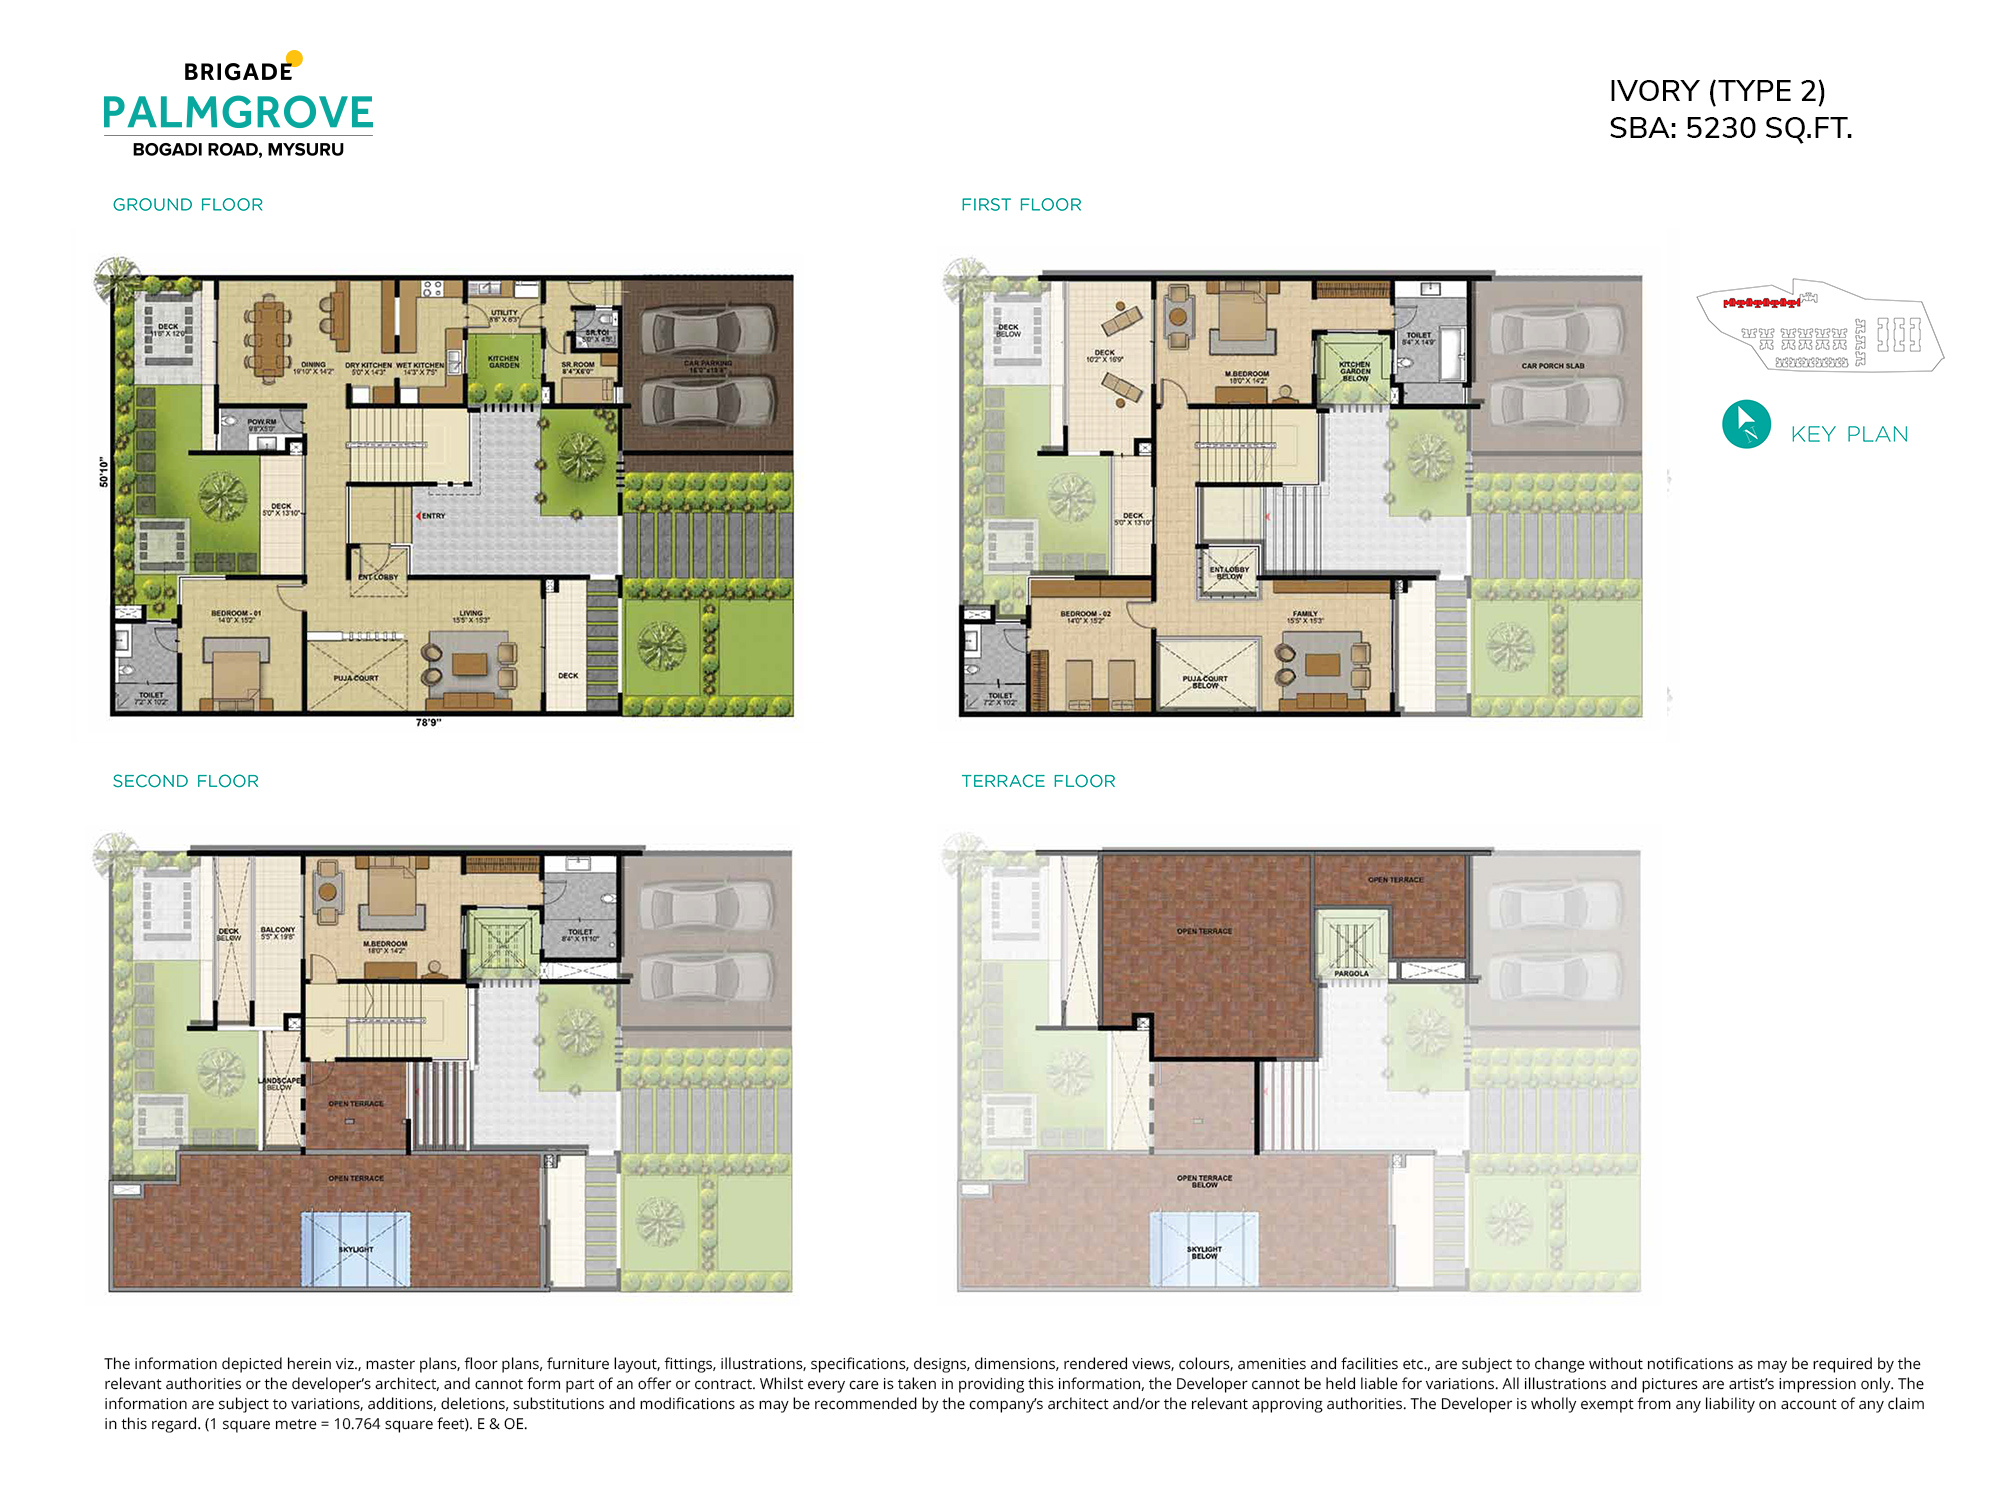 palmgrove-floor-plans-ivory-type-2